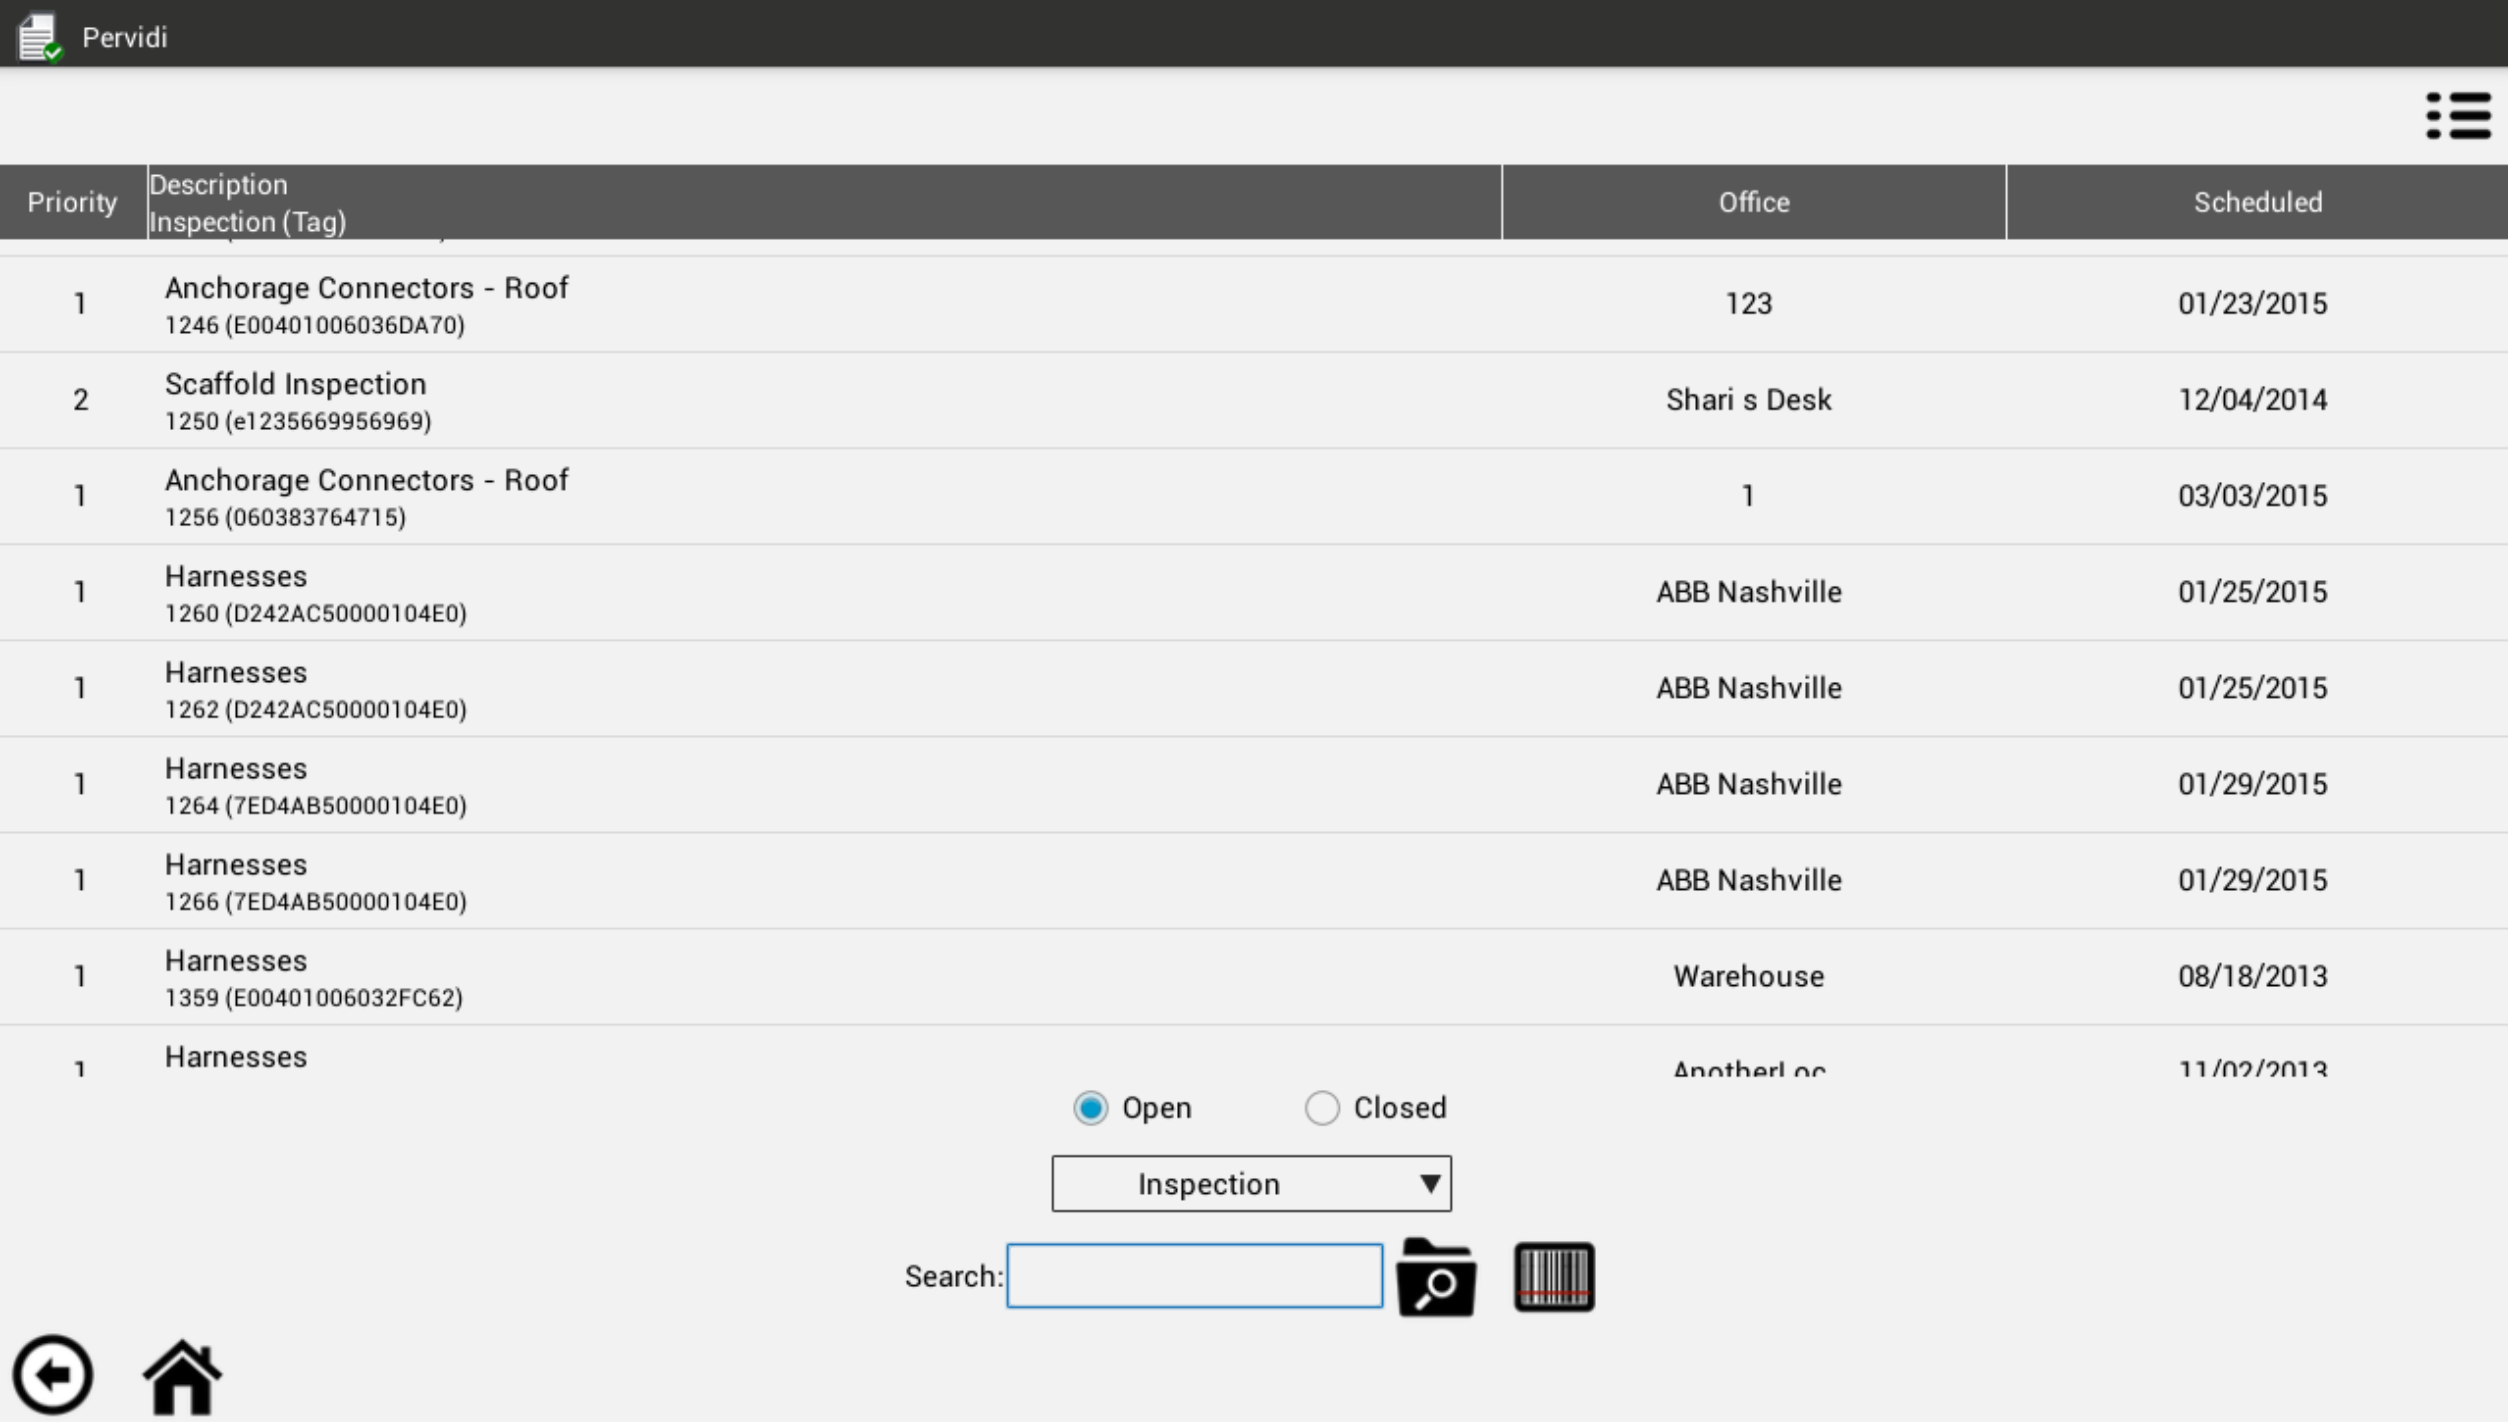 Pervidi Inspection screenshot: View priority on all inspections and their scheduled date